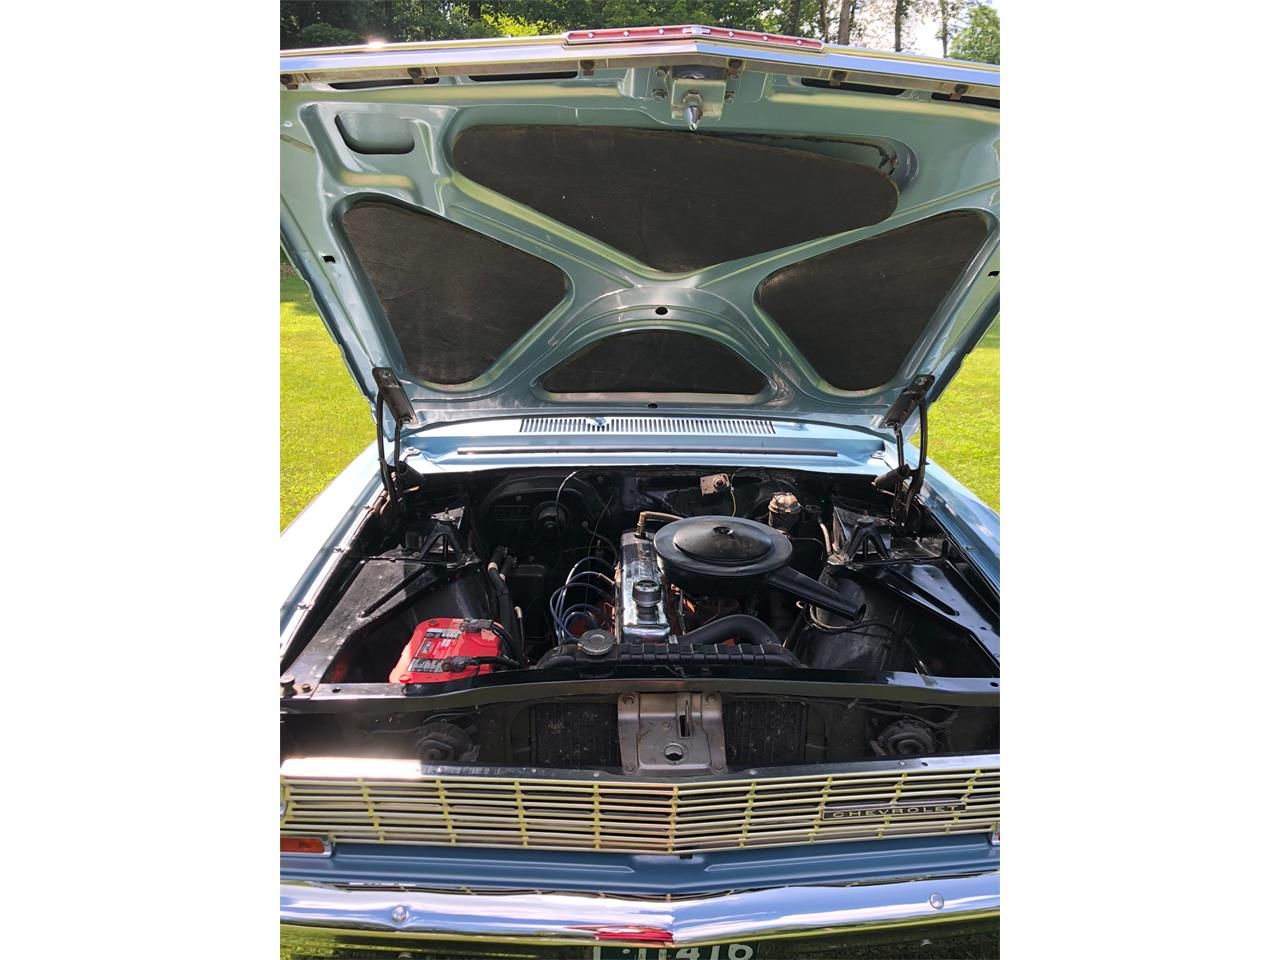 Large Picture of Classic 1964 Nova II SS located in Perrysville Ohio - $18,000.00 Offered by a Private Seller - PZIX